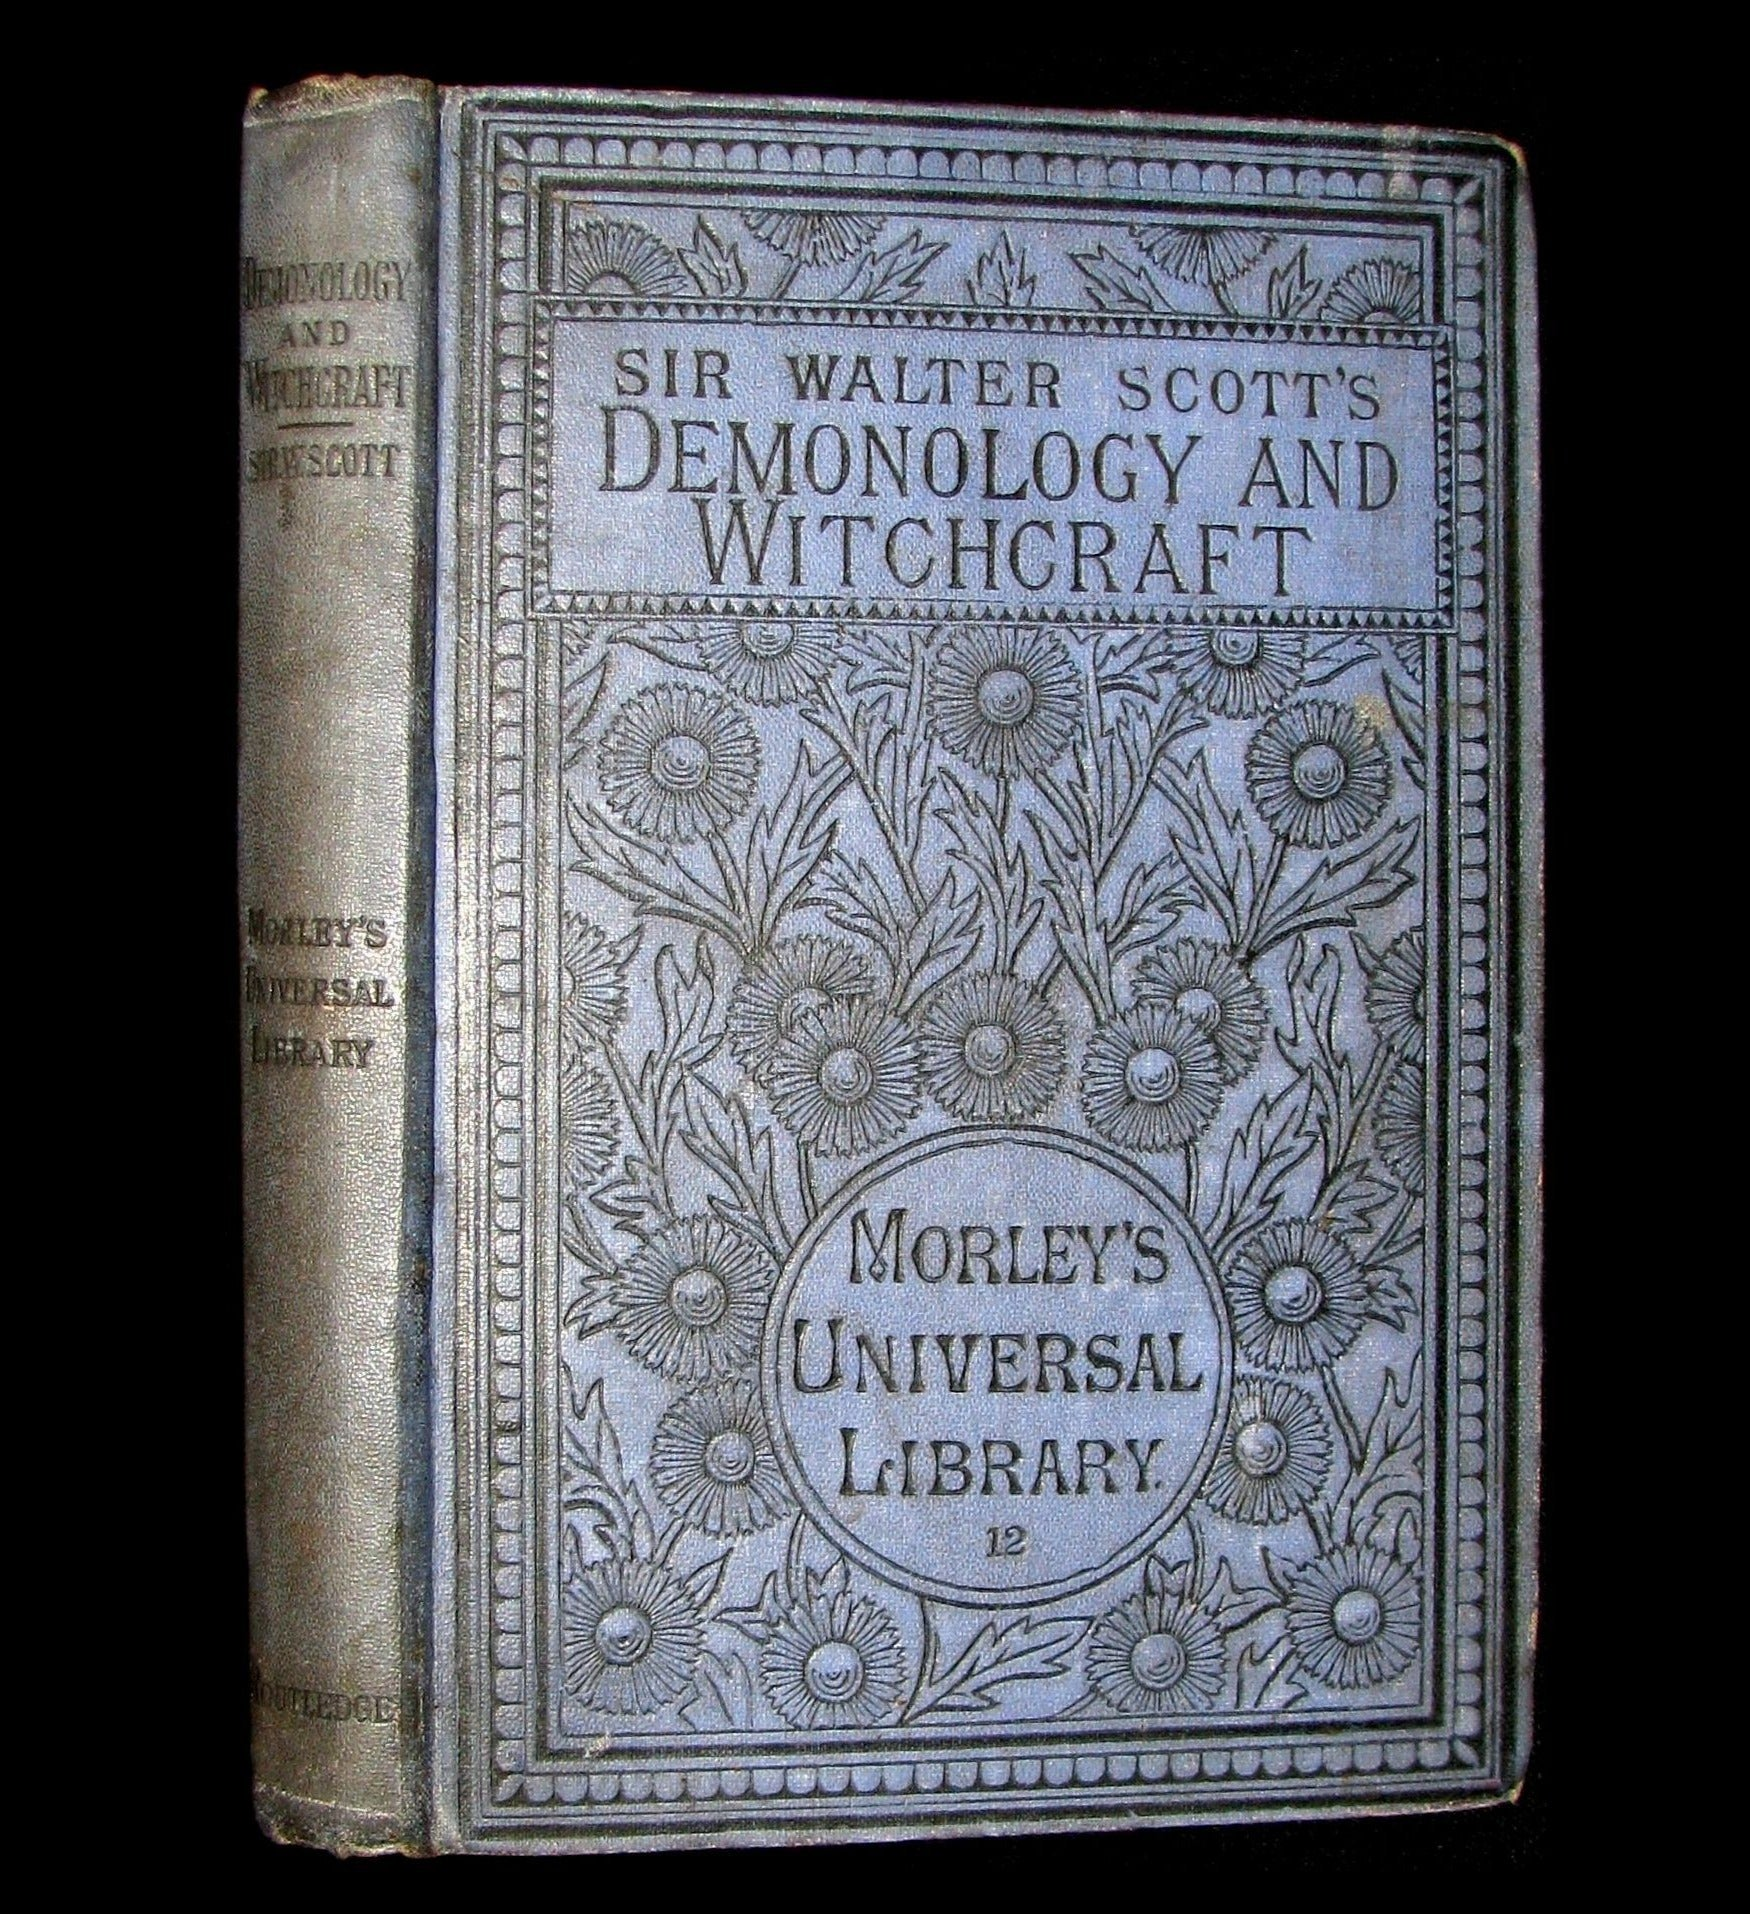 1884 Rare Edition  - Demonology & Witchcraft - WITCHES & FAIRIES by Sir Walter Scott. James B. Findlay Copy.